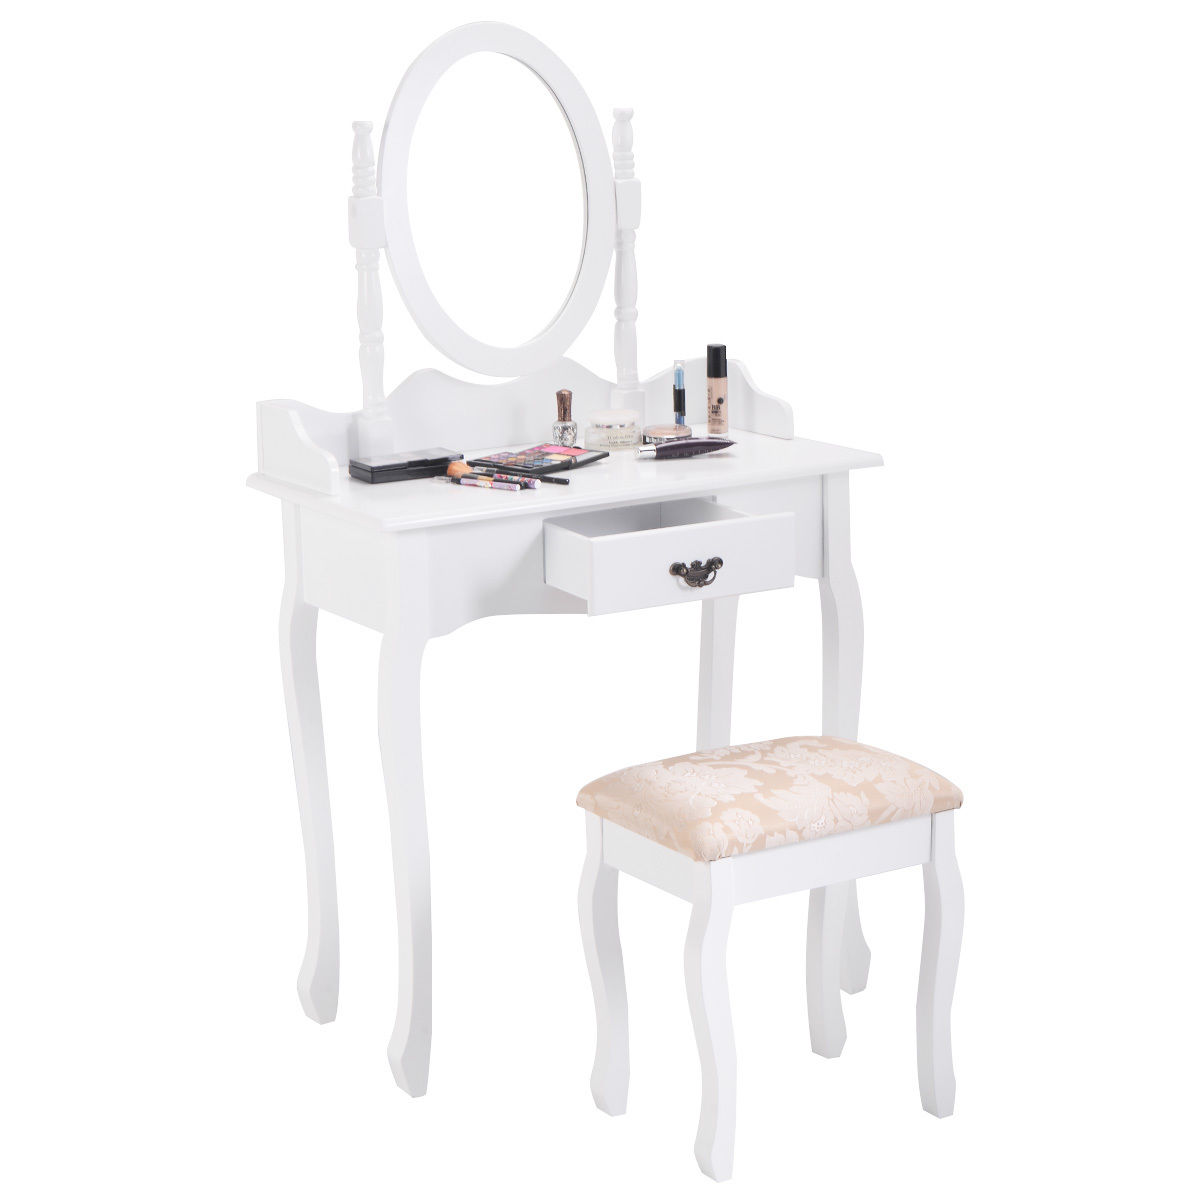 Costway Vanity Wood Makeup Dressing Table Stool Set Jewelry Desk W  Drawer &Mirror White by Costway